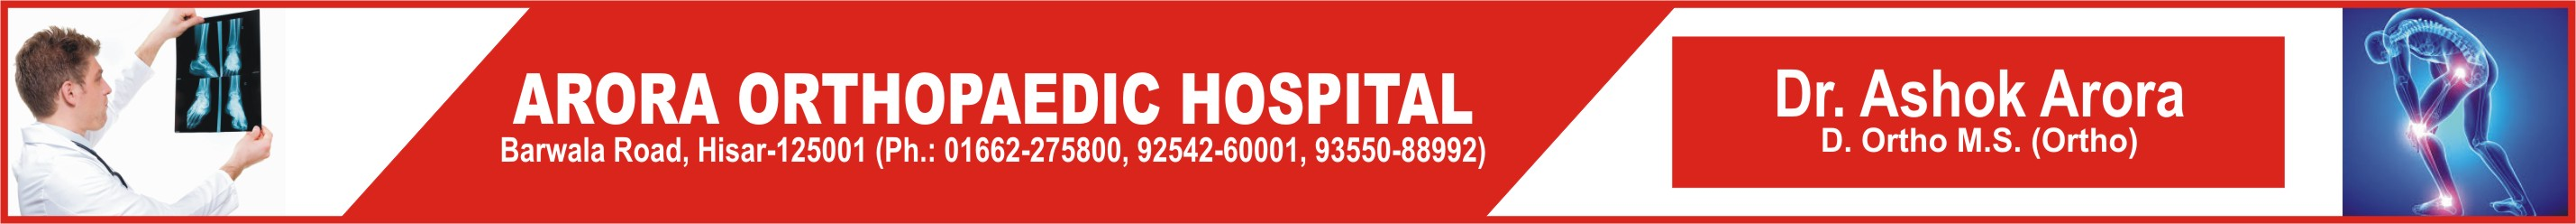 ARORA ORTHOPEDIC HOSPITAL